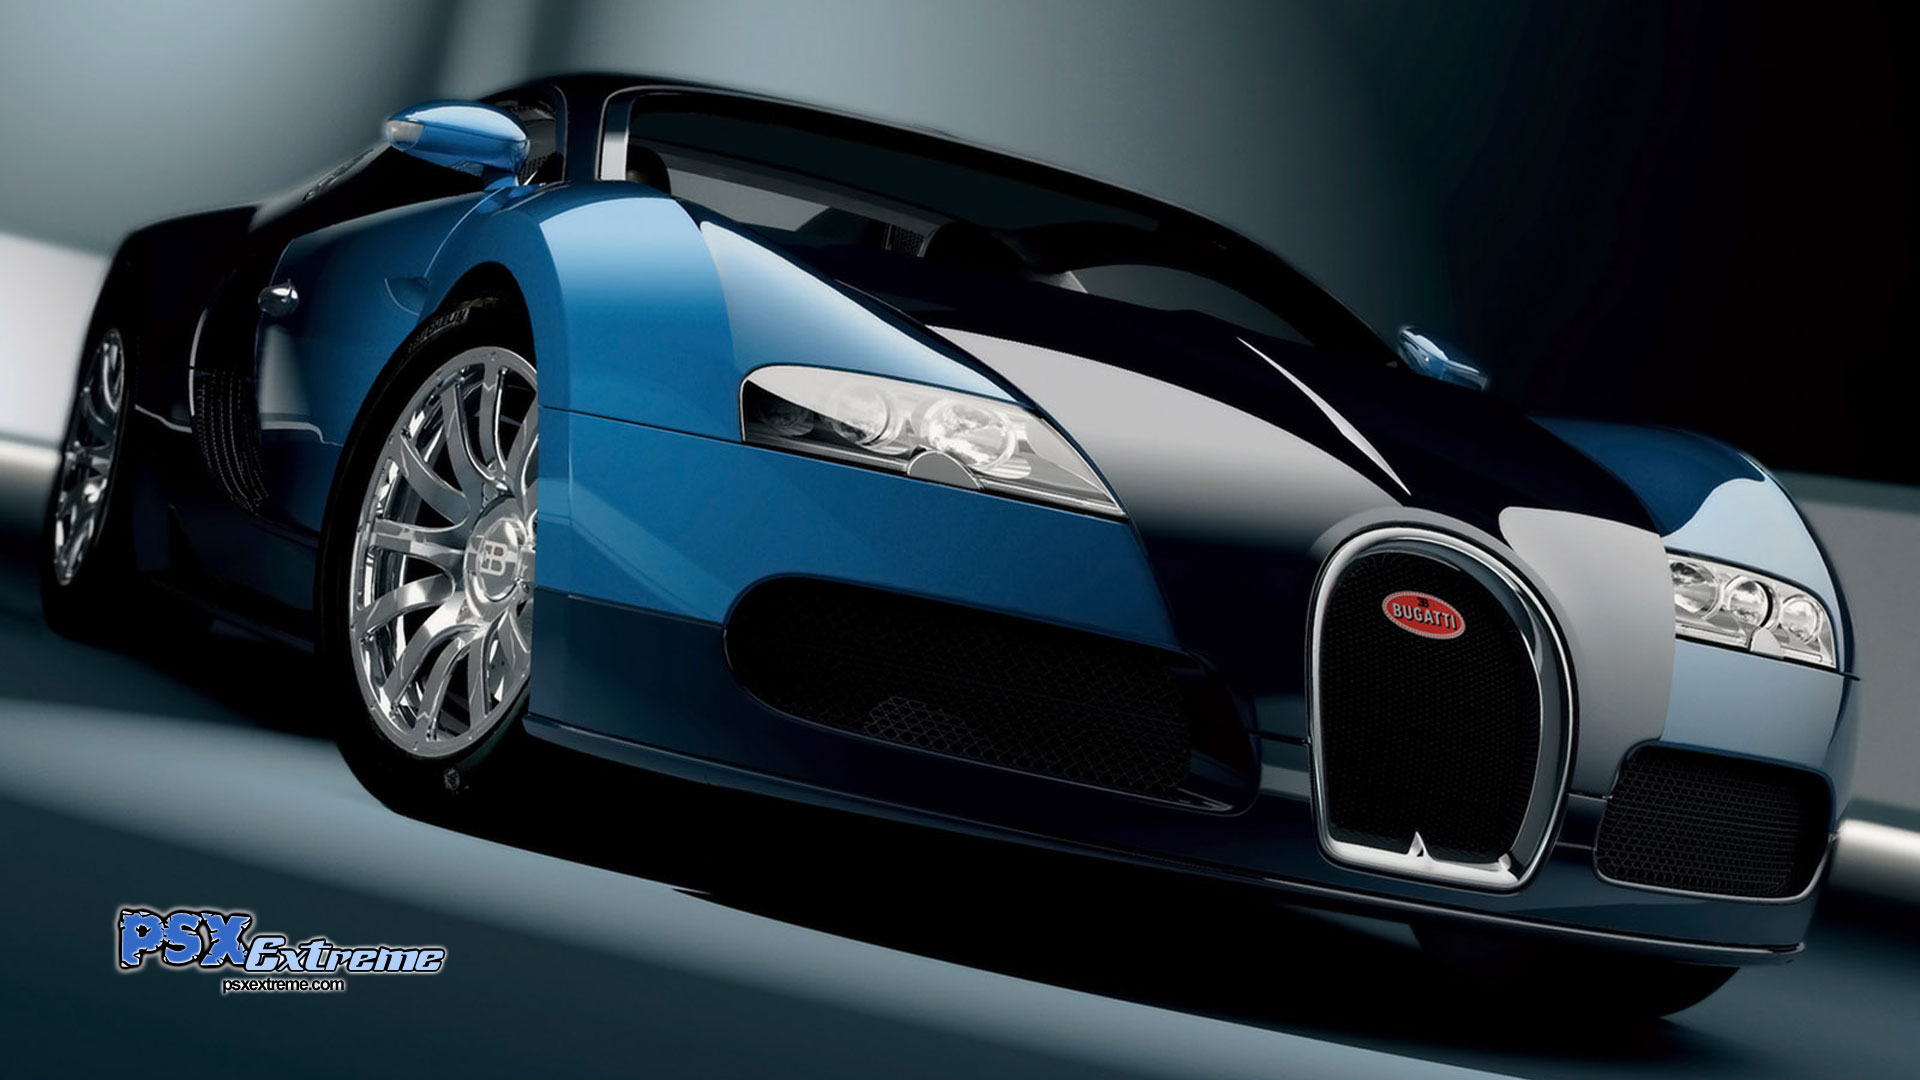 http://images.psxextreme.com/wallpapers/ps3/bugatti-veyron_02.jpg